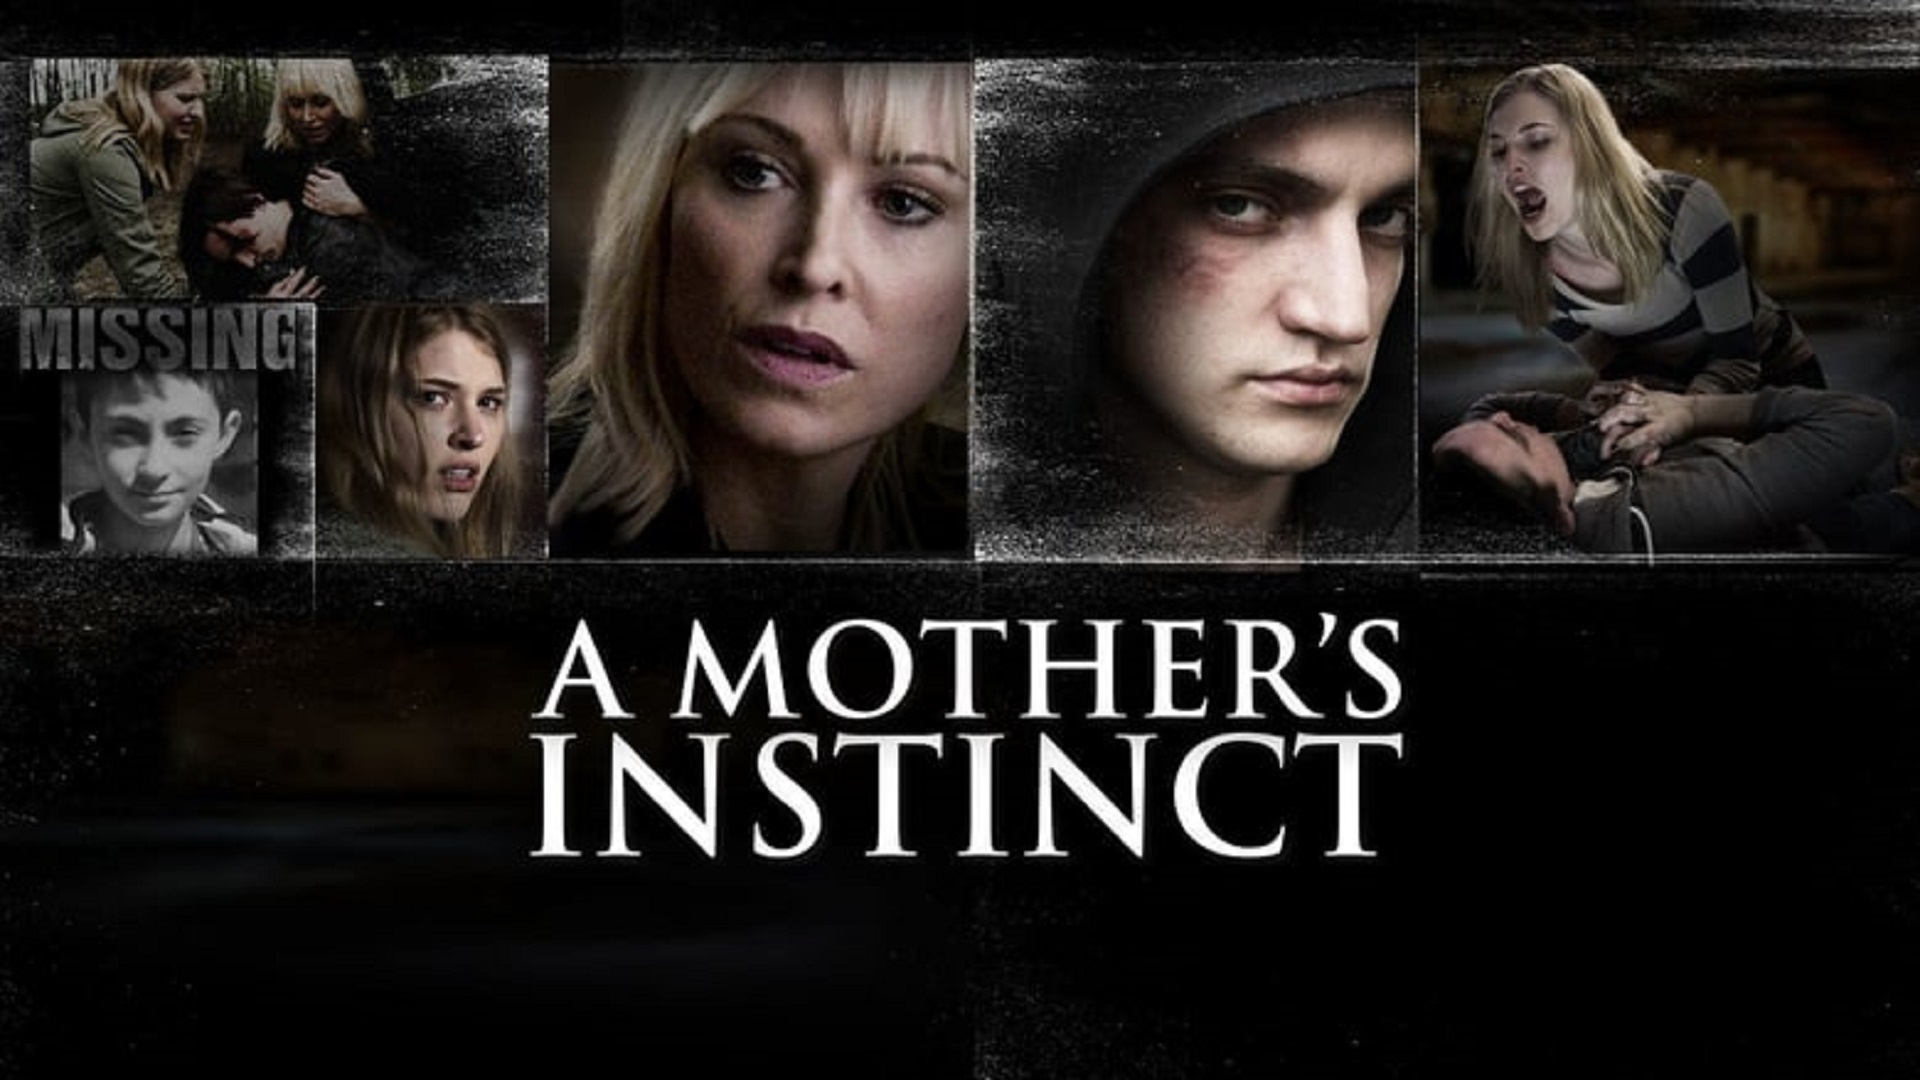 A Mother's Instinct